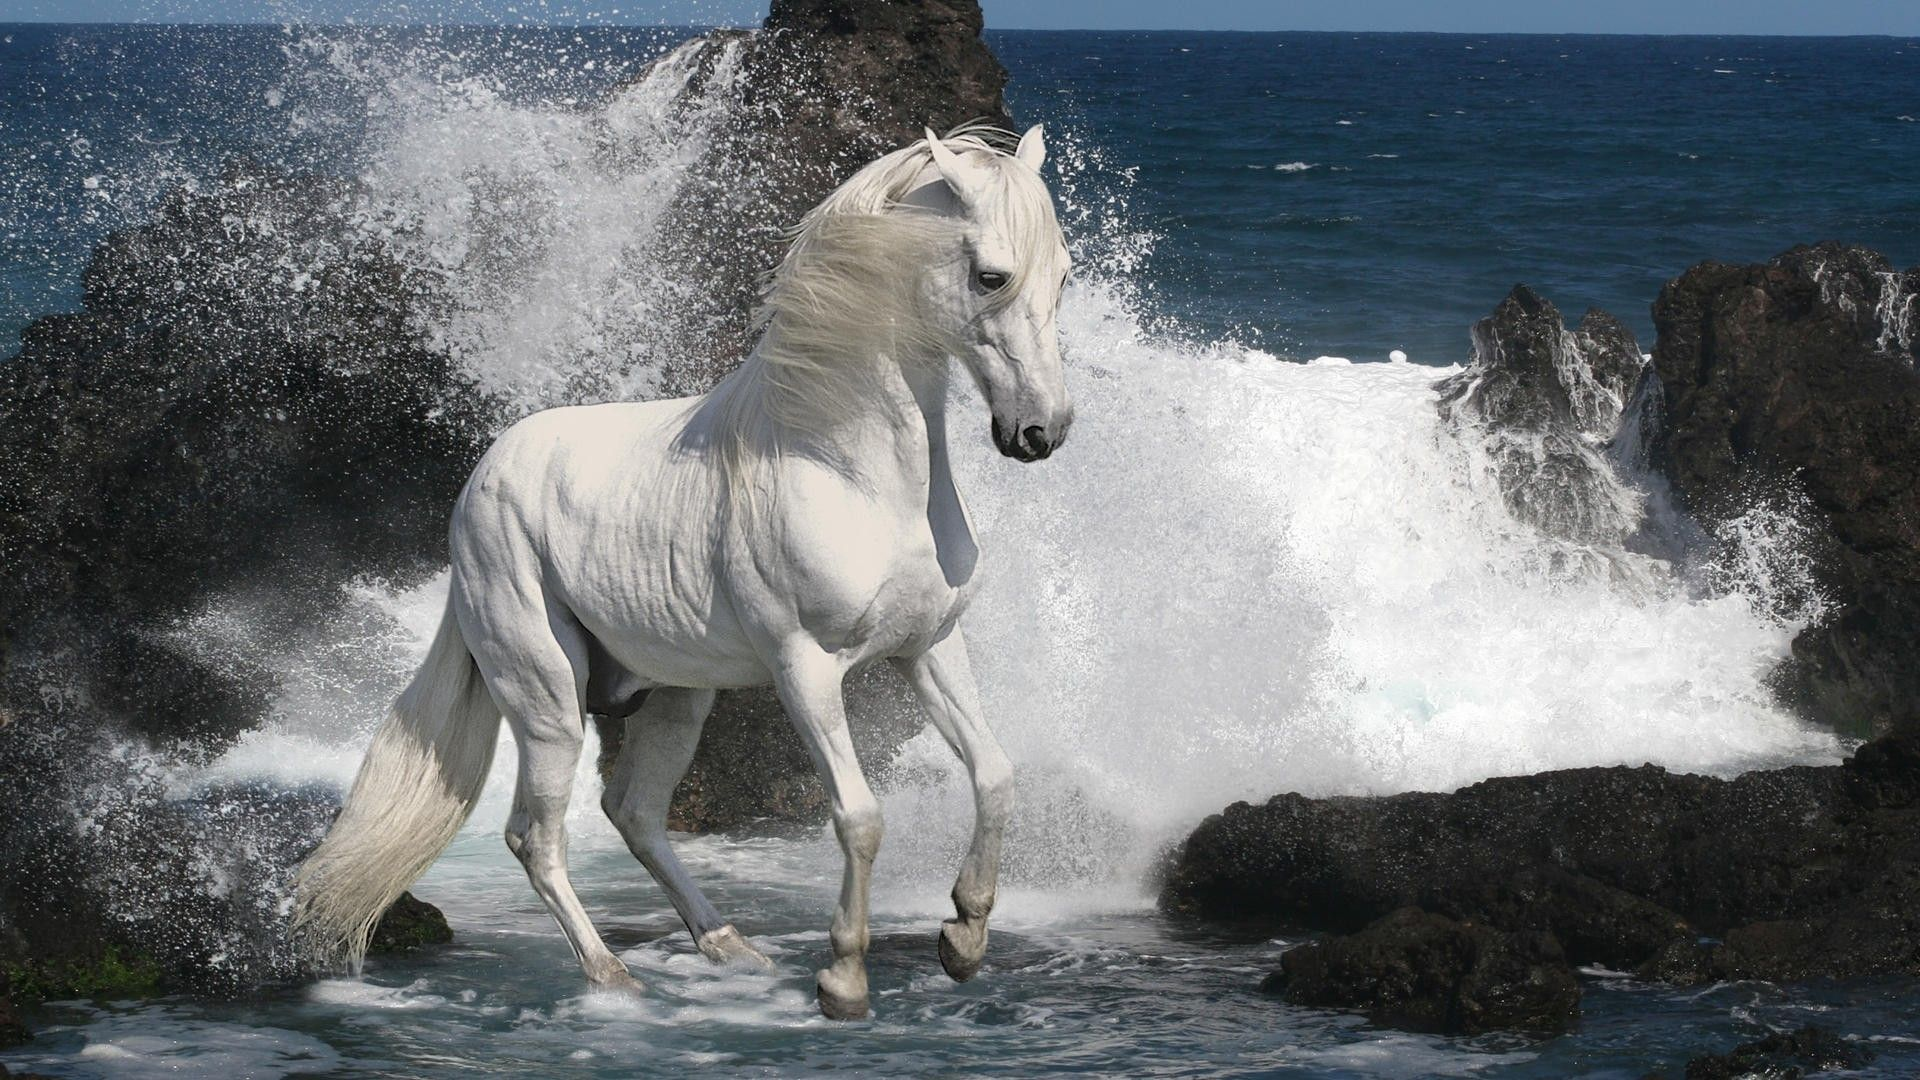 The Wallpapers Horses Beautiful